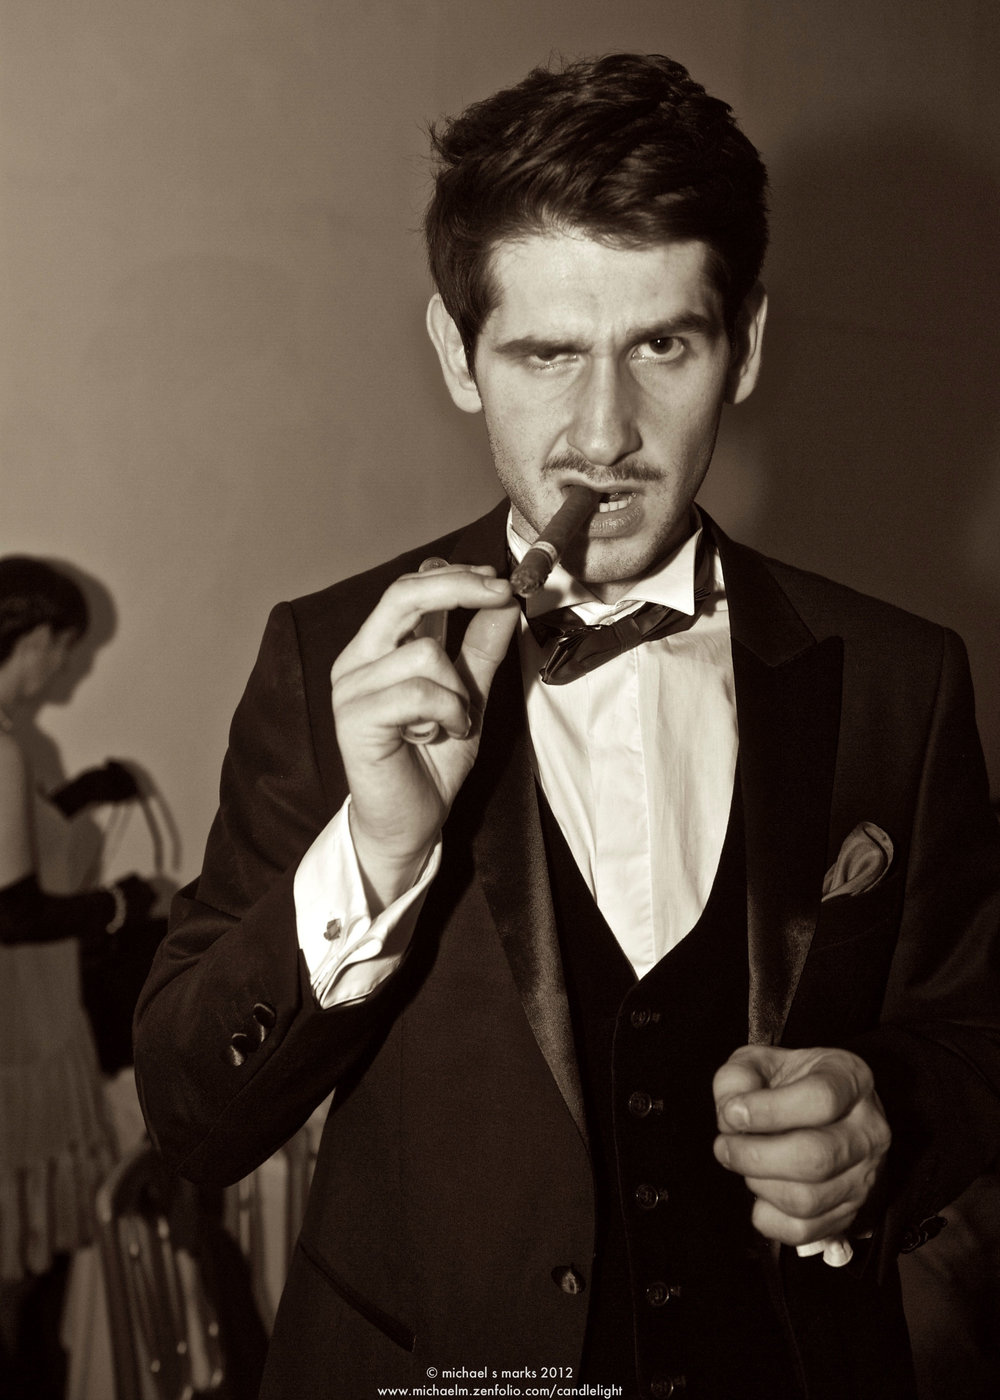 Man in evening wear smoking a cigar